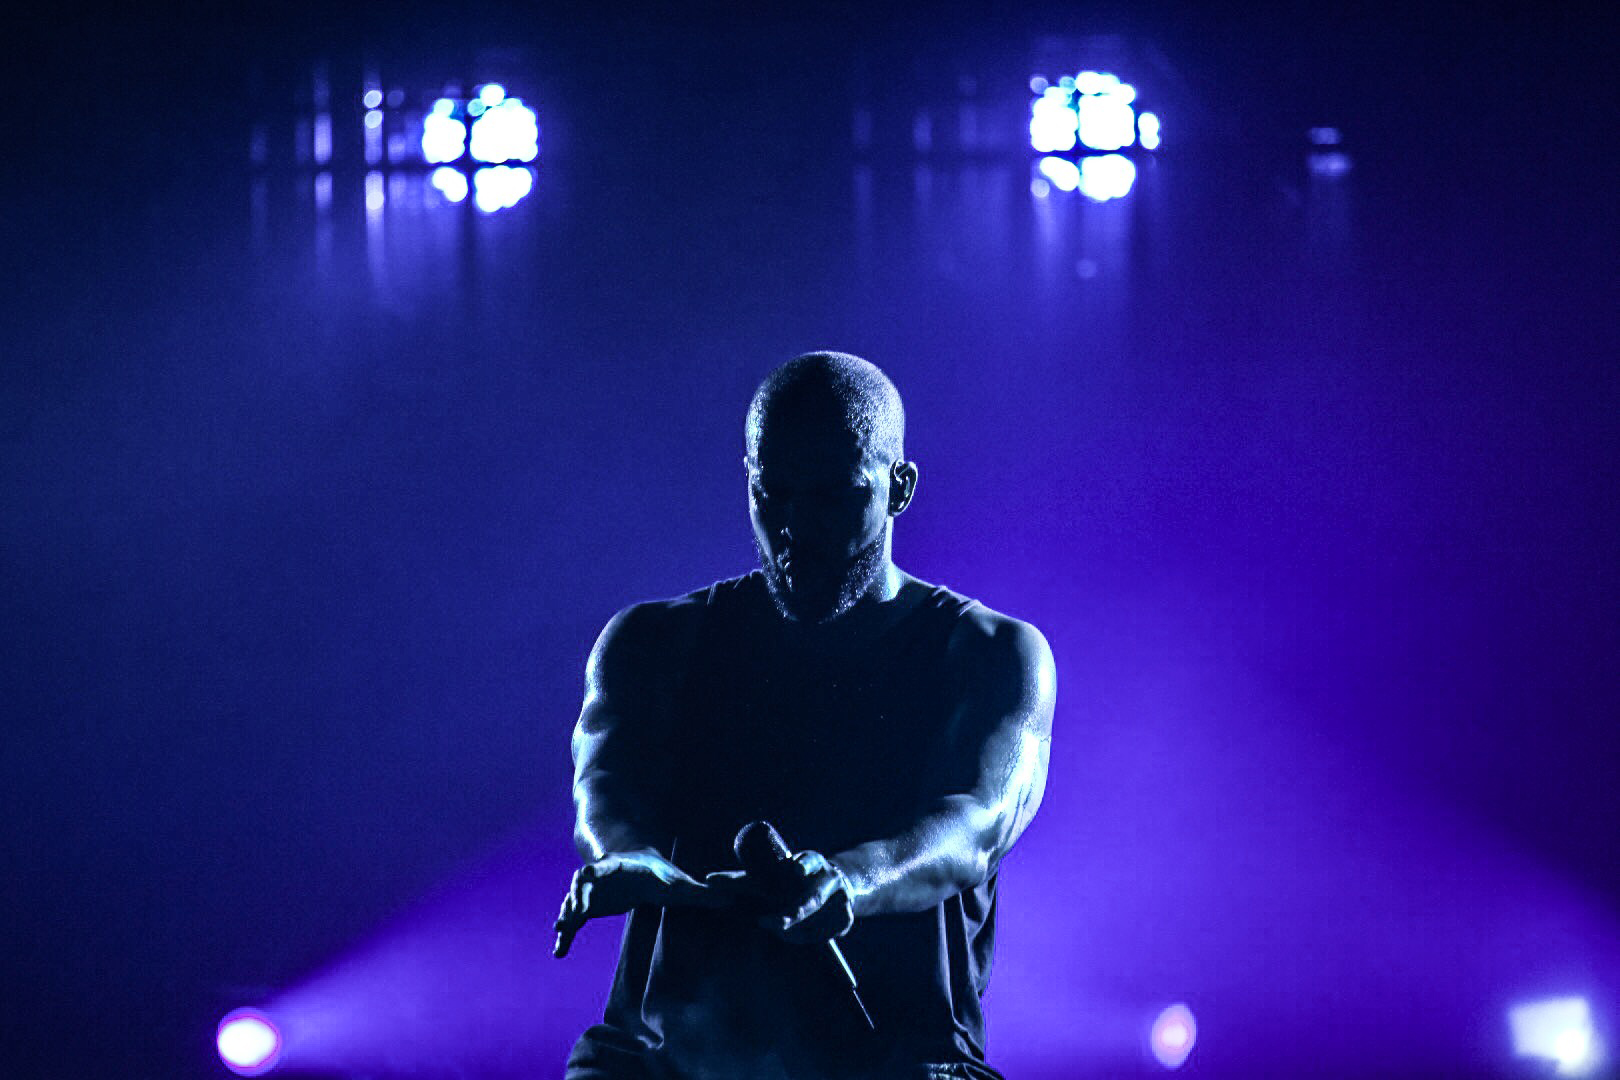 08 - Drake Performs at Glasgow's SSE Hydro as part of The Boy Meets Word Tour - 23-03-17 - Picture By - Calum Buchan Photography.jpg